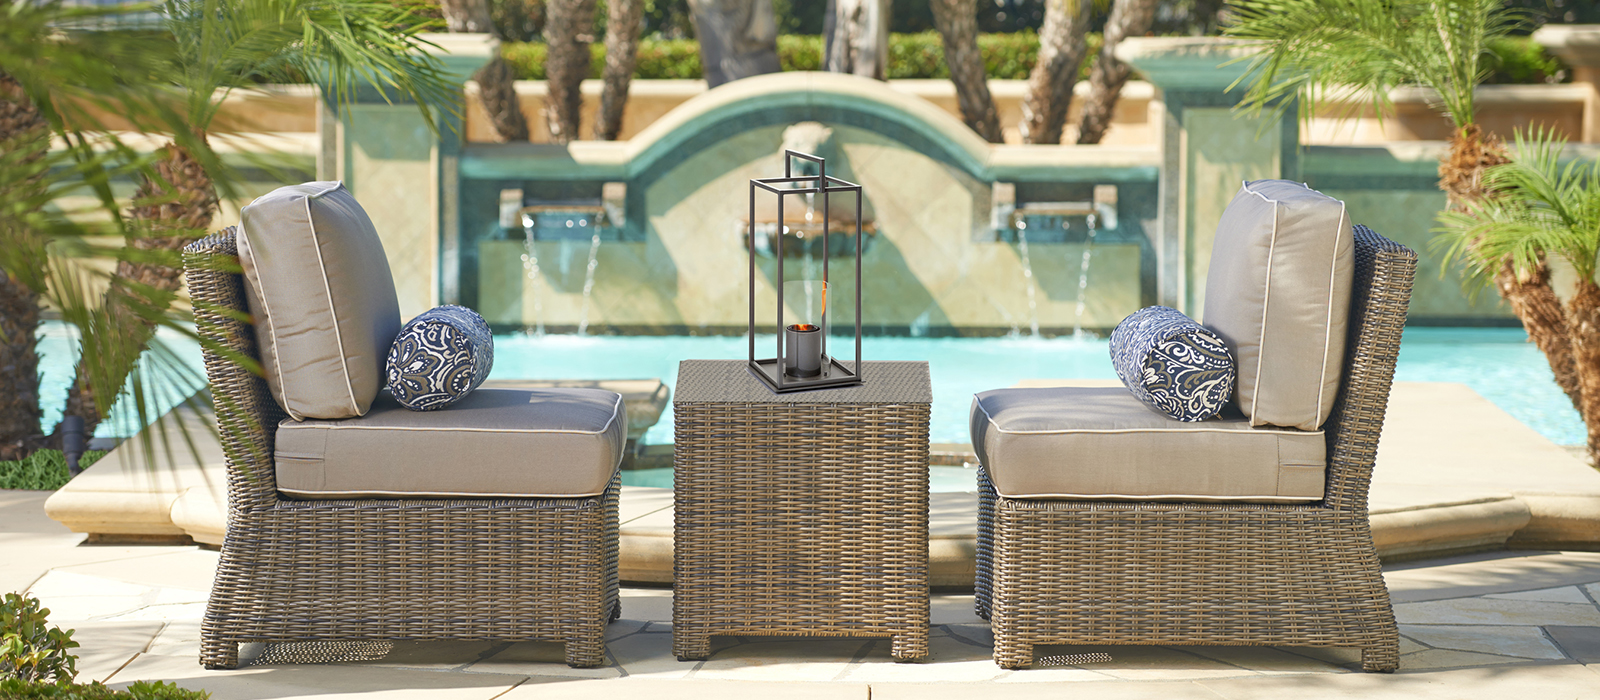 Sunshine Wicker And Design | Coastal And Tropical Quality Furniture Part 63